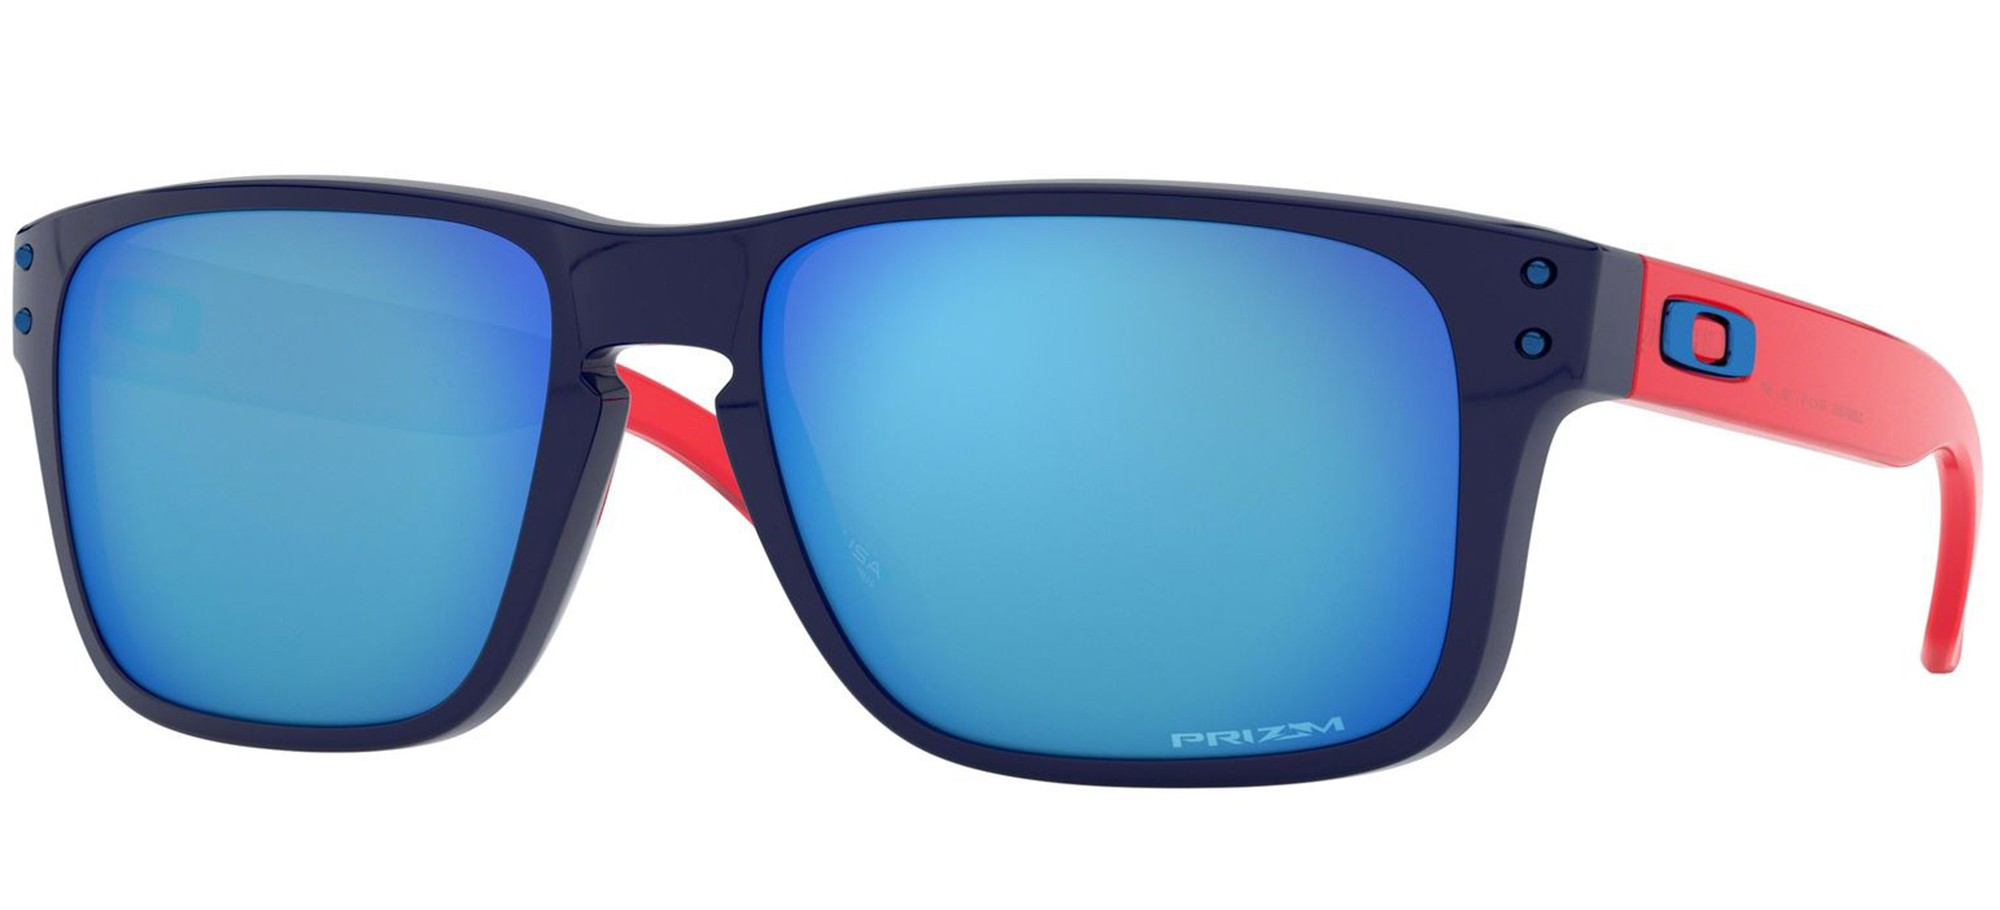 Oakley sunglasses HOLBROOK XS JUNIOR OJ 9007